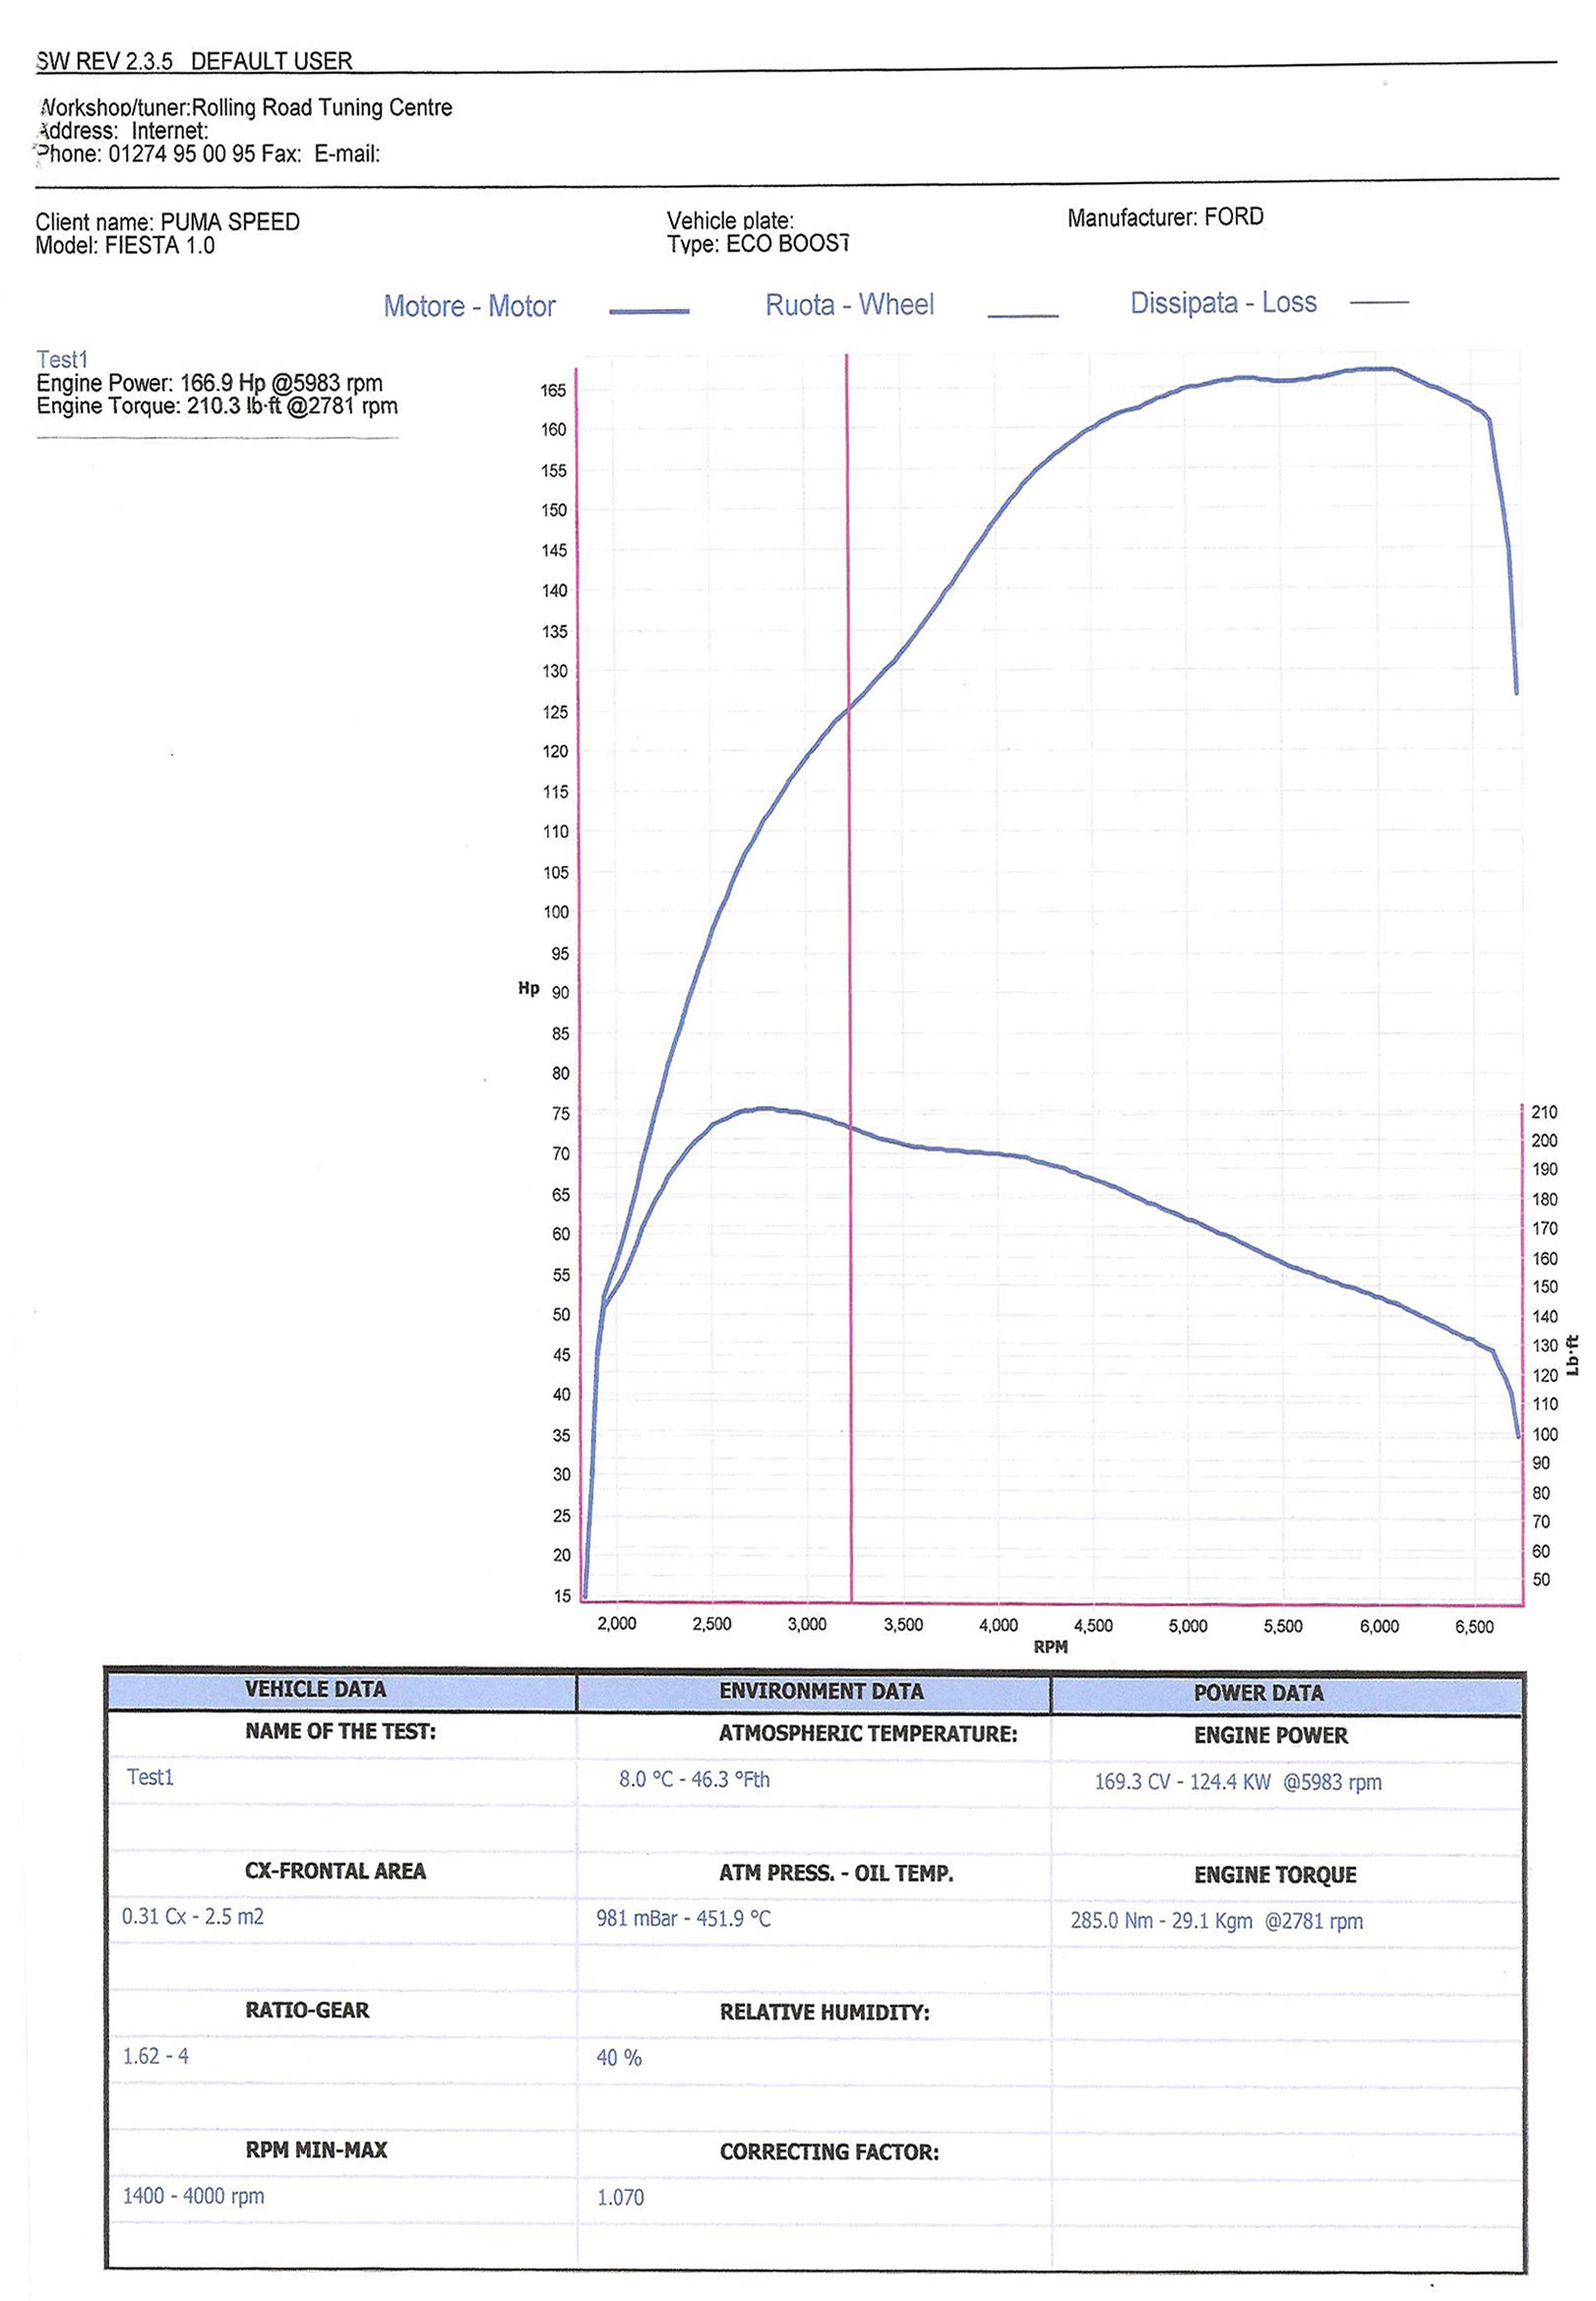 http://www.pumaspeed.co.uk/saved/Ford_Fiesta_1.0_turbo_ecoboost_166.8bhp_power_graph.jpg